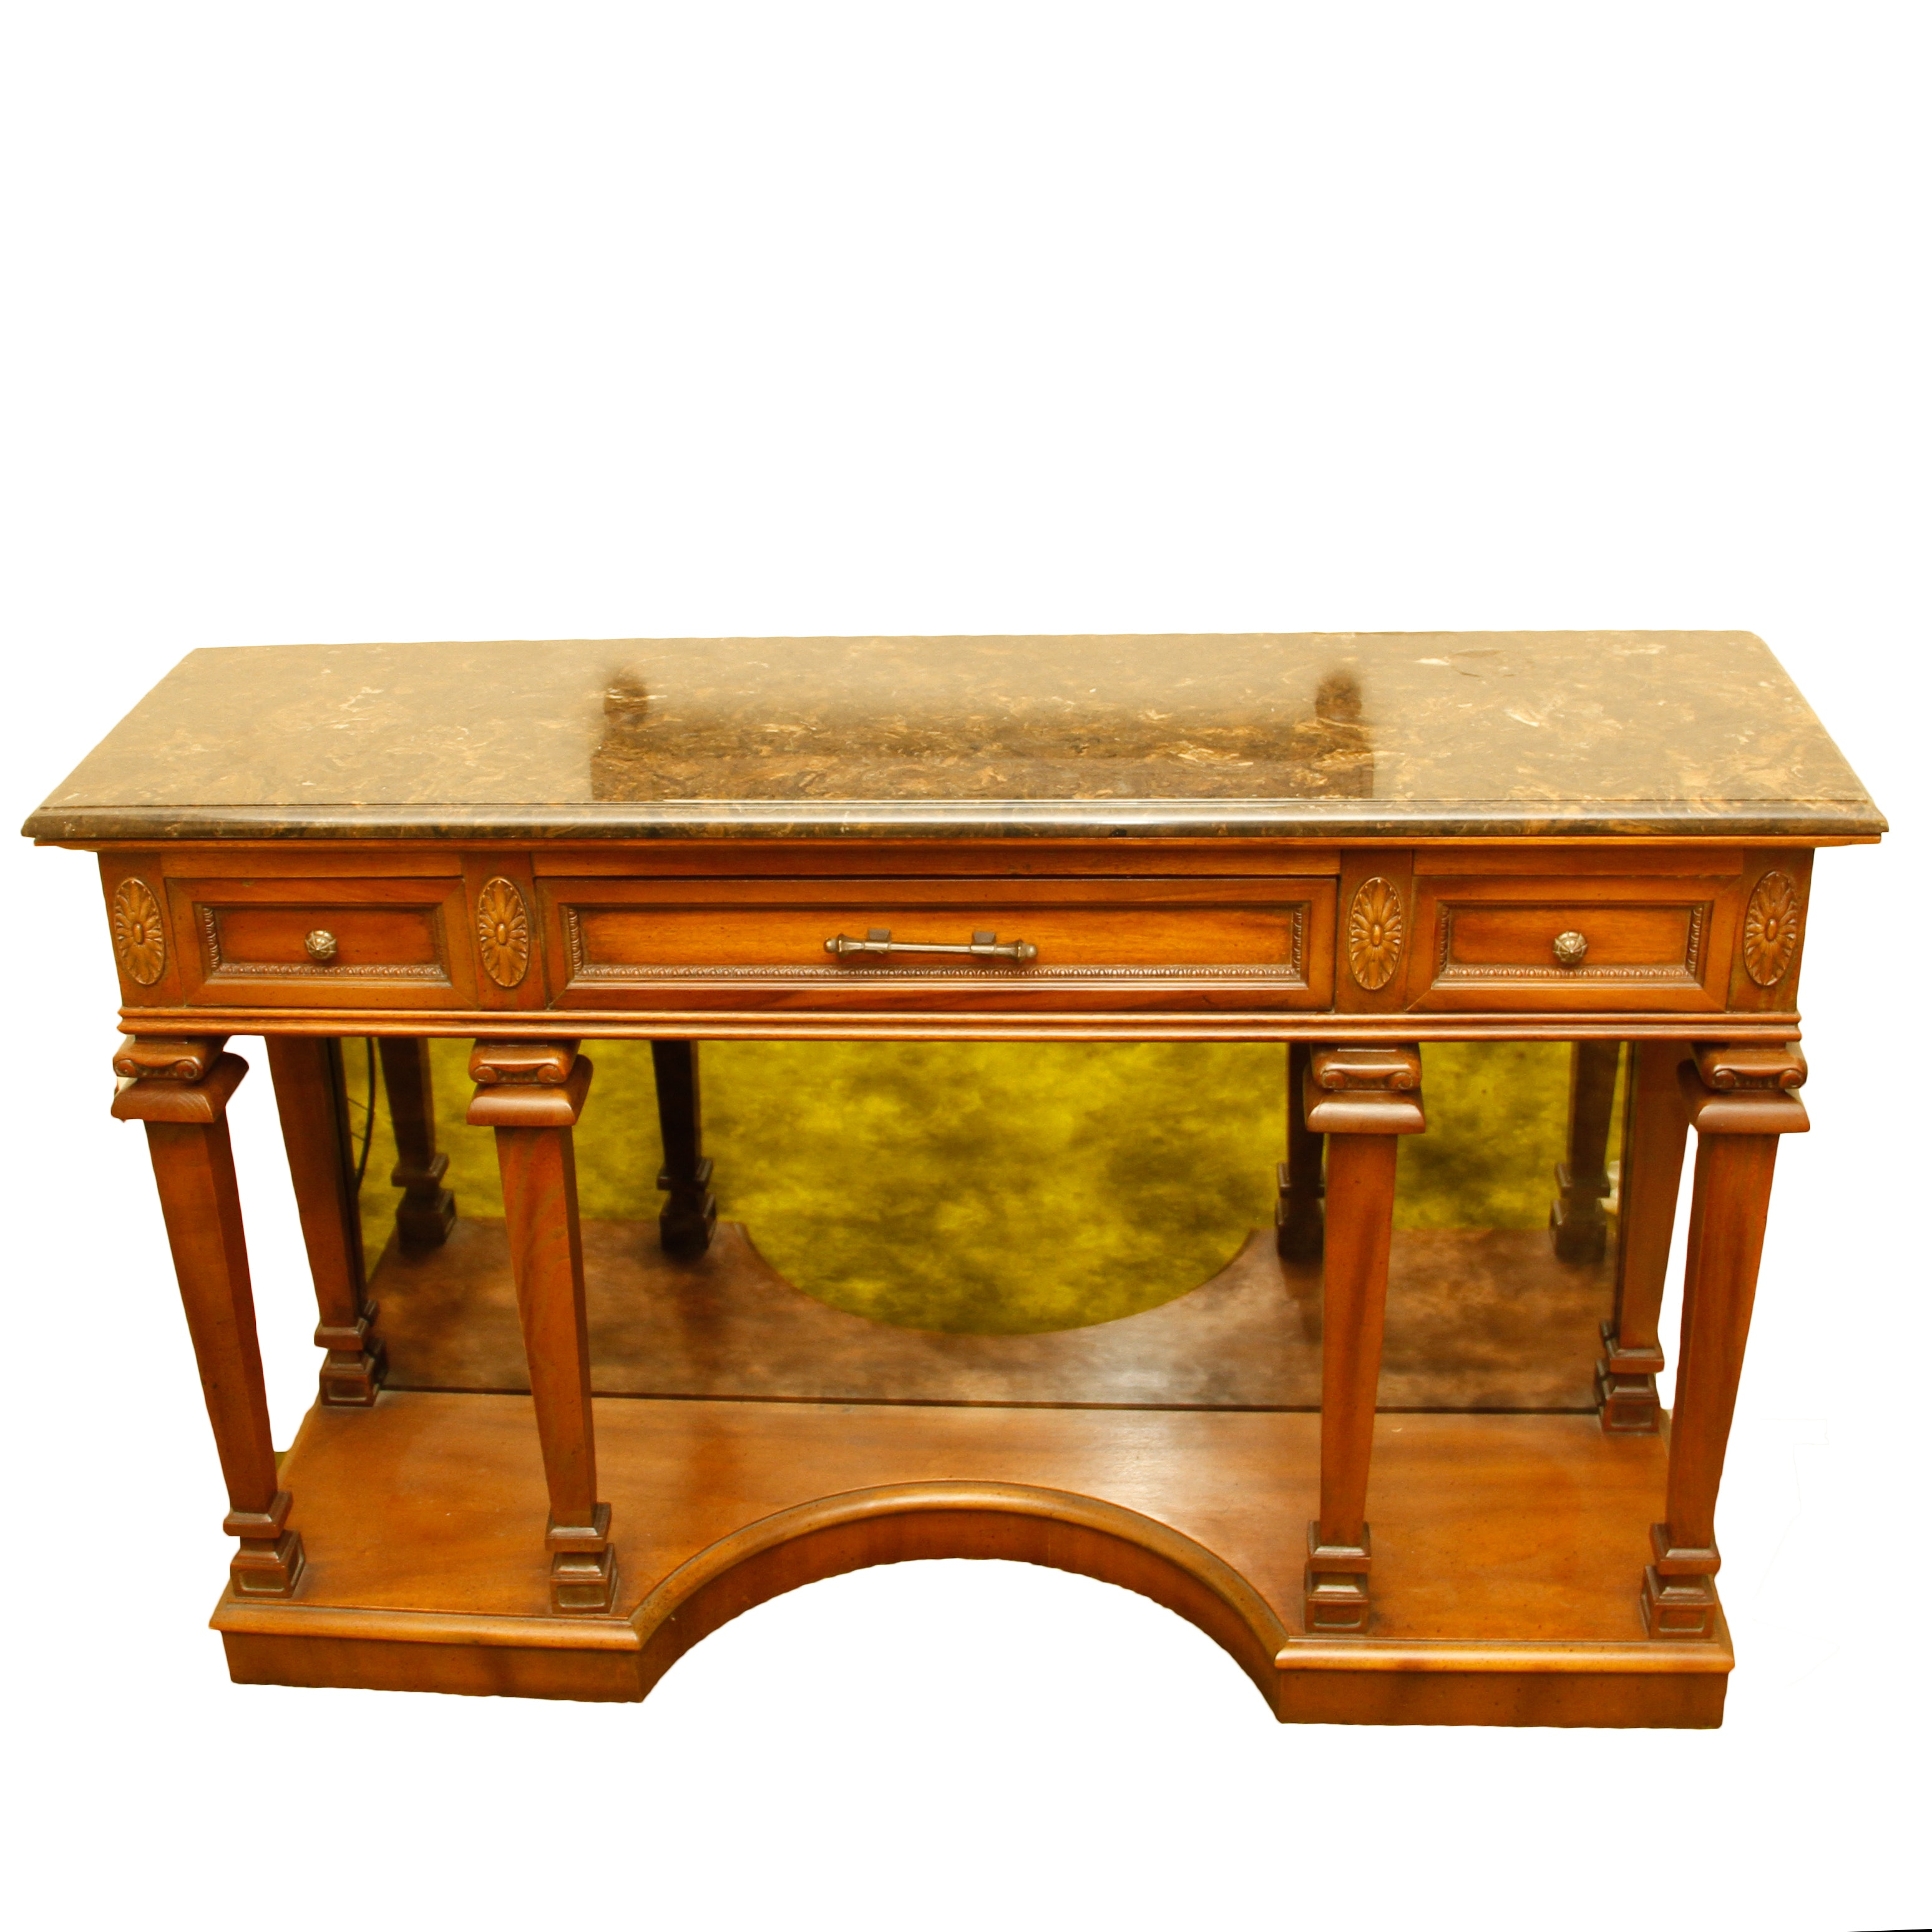 Marble Top Entry Way Table by Samford Furniture